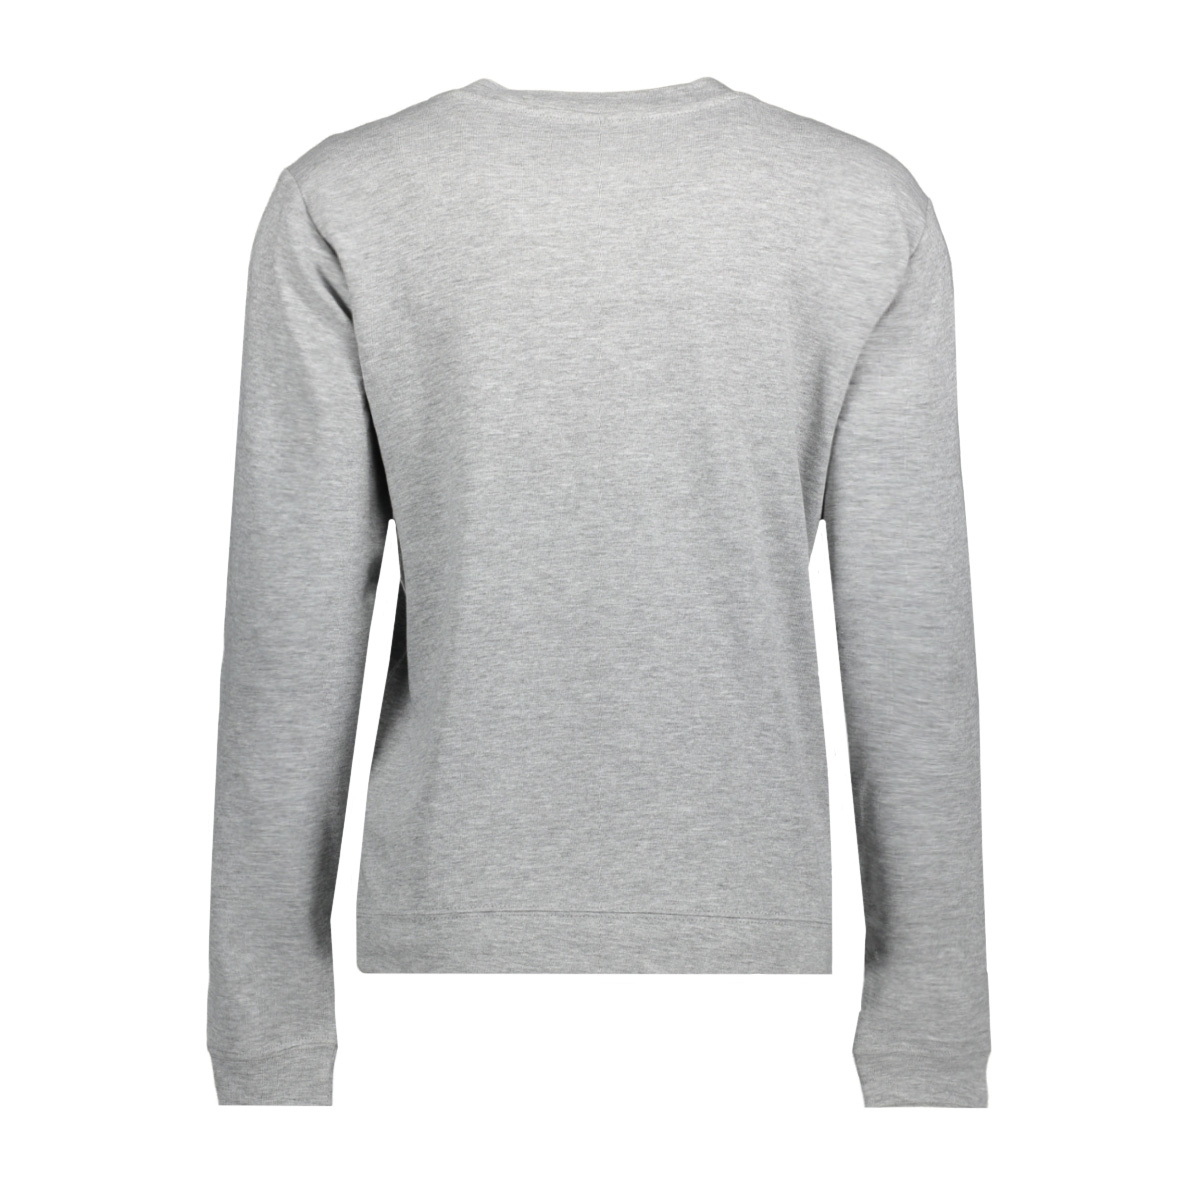 jdynewton l/s print sweat 02 swt 15143170 jacqueline de yong sweater light grey mela/harmonie